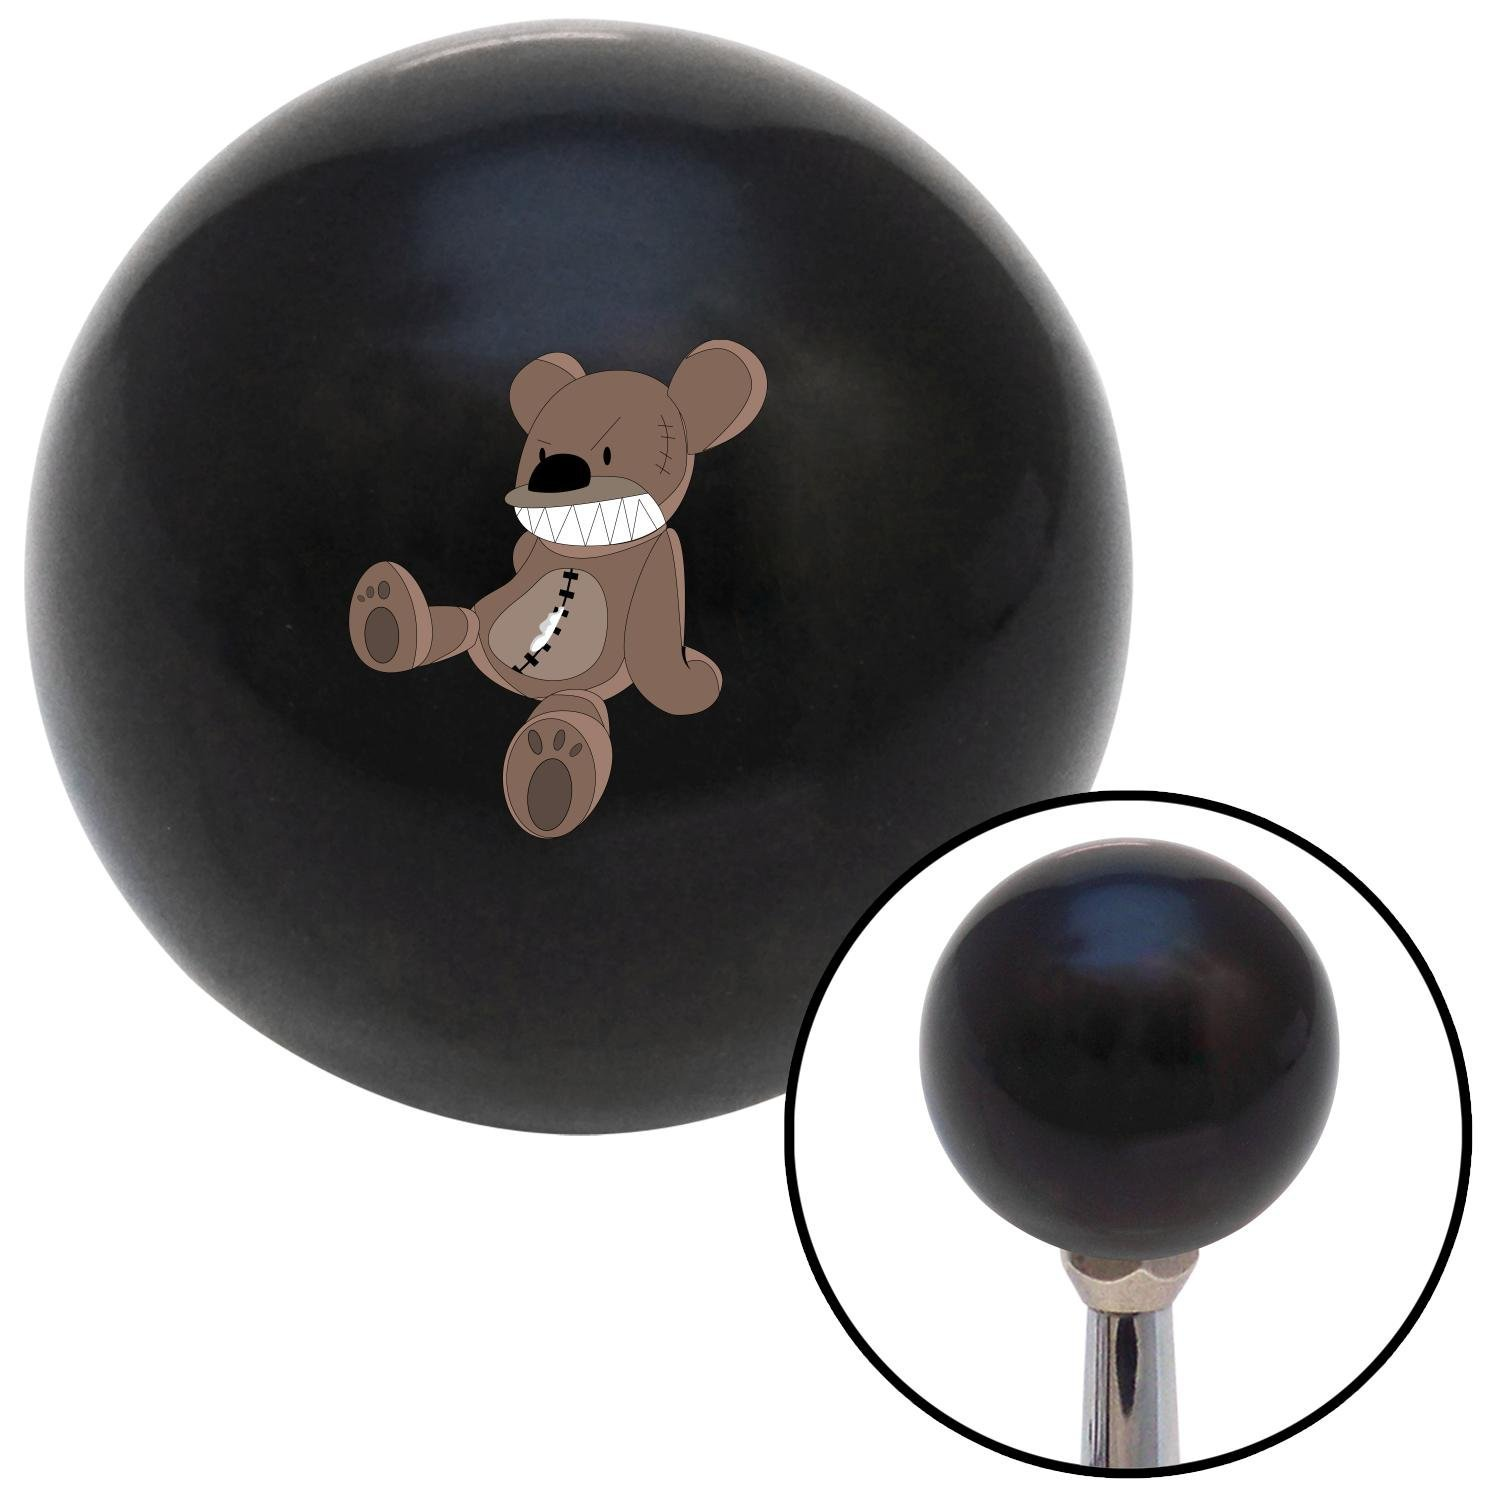 Angry Teddy 2 American Shifter 107587 Black Shift Knob with M16 x 1.5 Insert